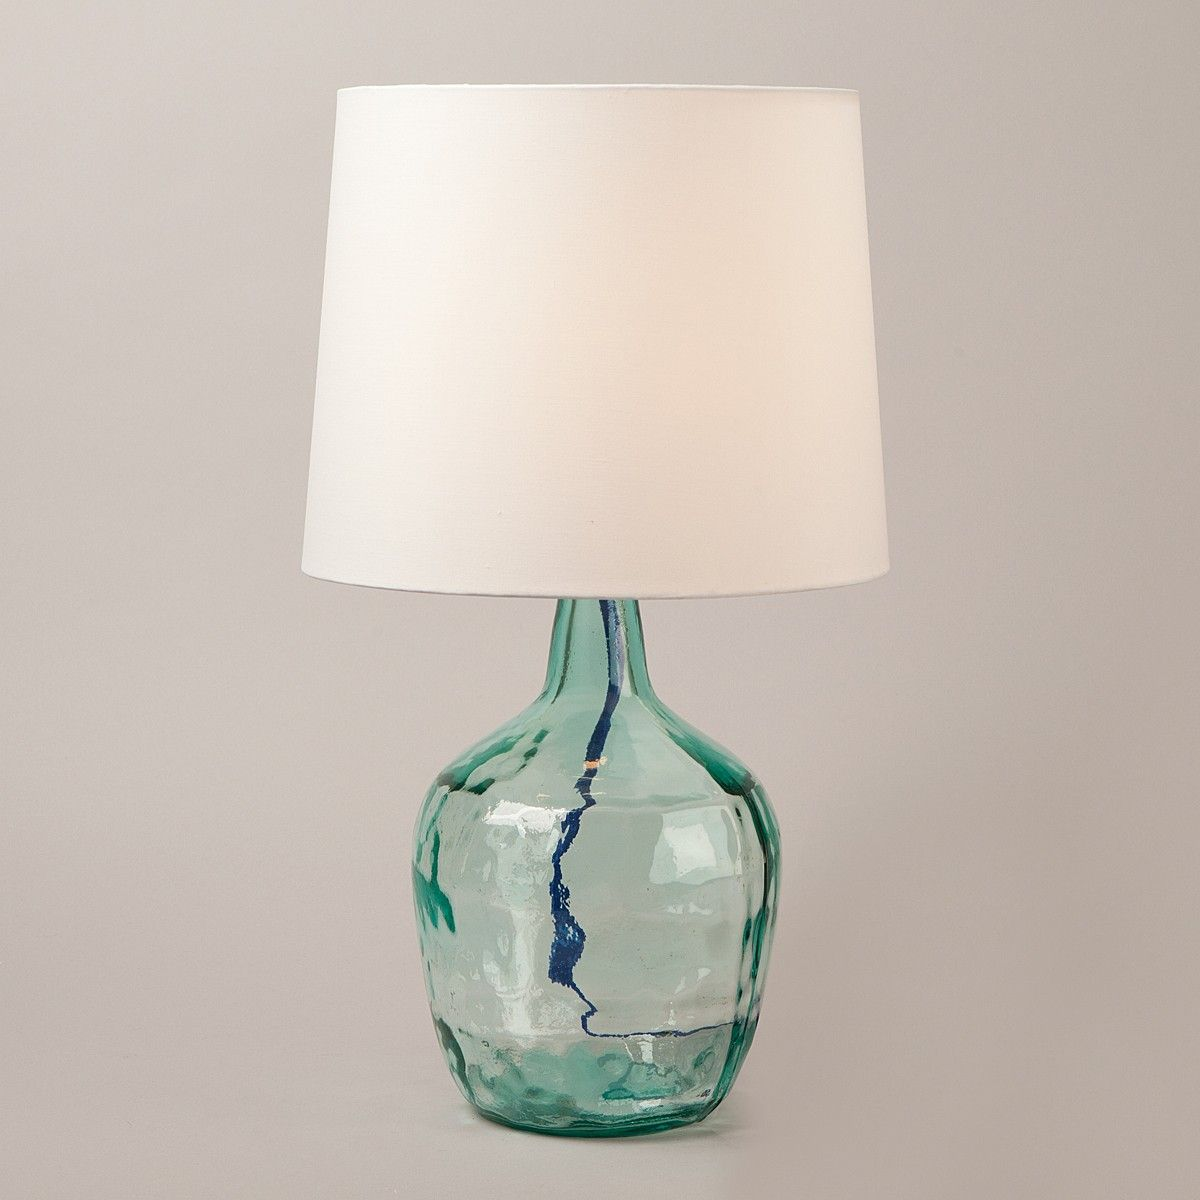 Recycled Glass Table Lamp | Wicker Emporium Wish List ...